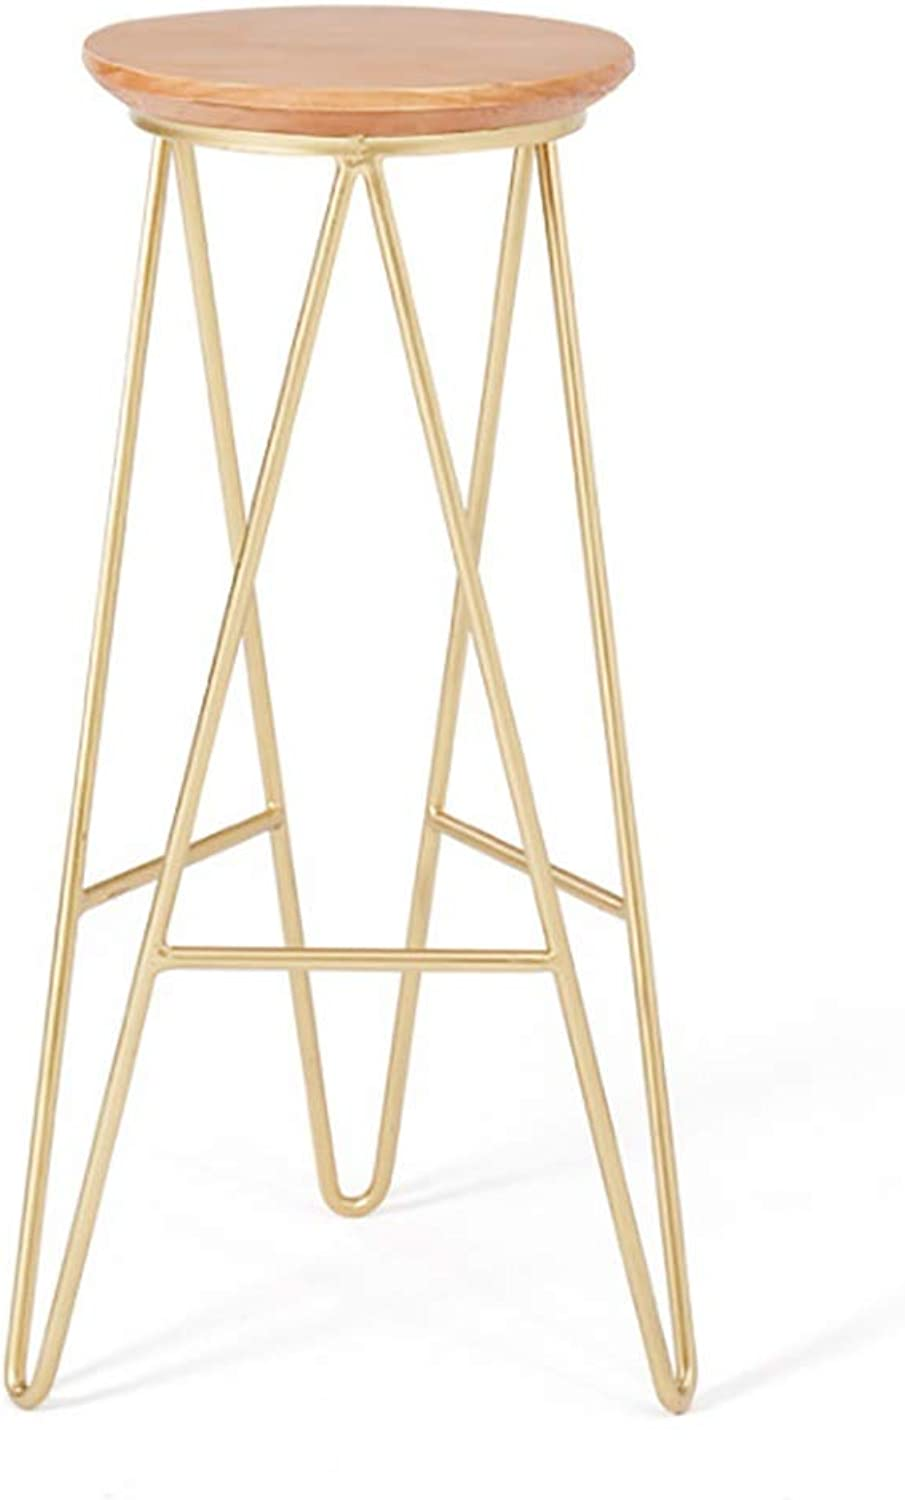 Nordic Minimalist Bar Stool High Stool Bar Chair golden Home Wrought Iron Stool Size  30  30  75CM